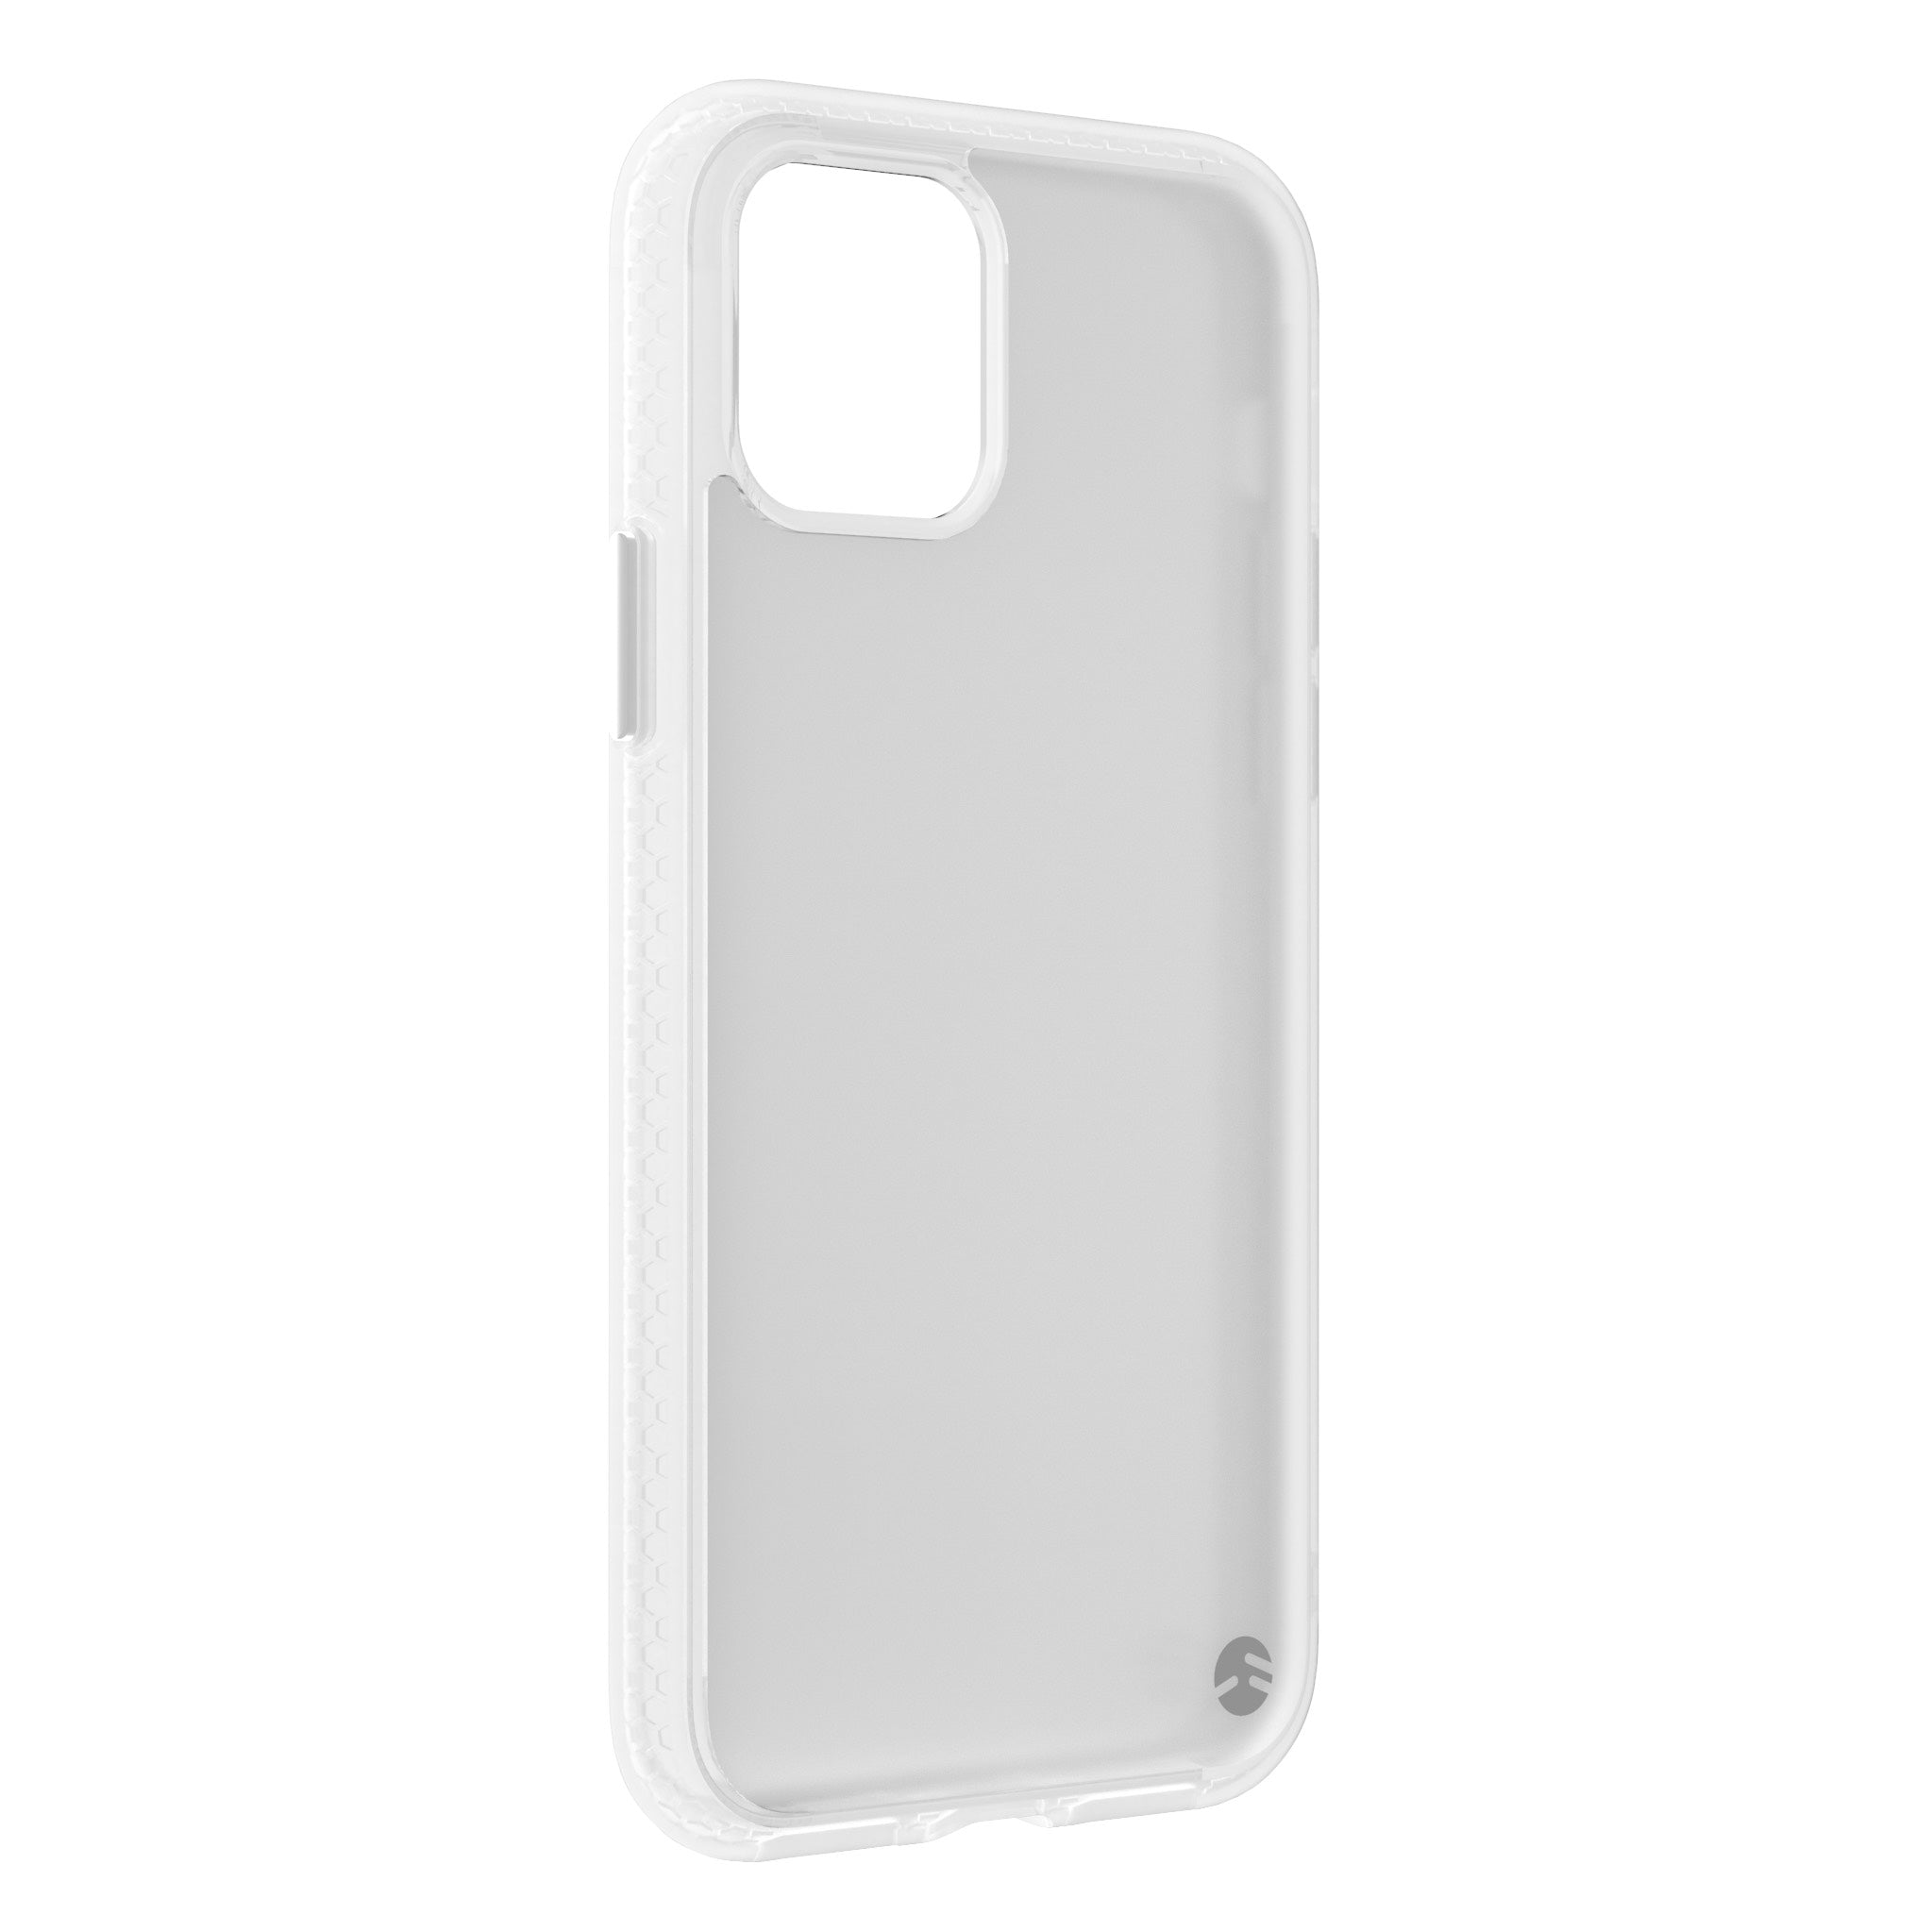 Aero iPhone 11 Pro - White